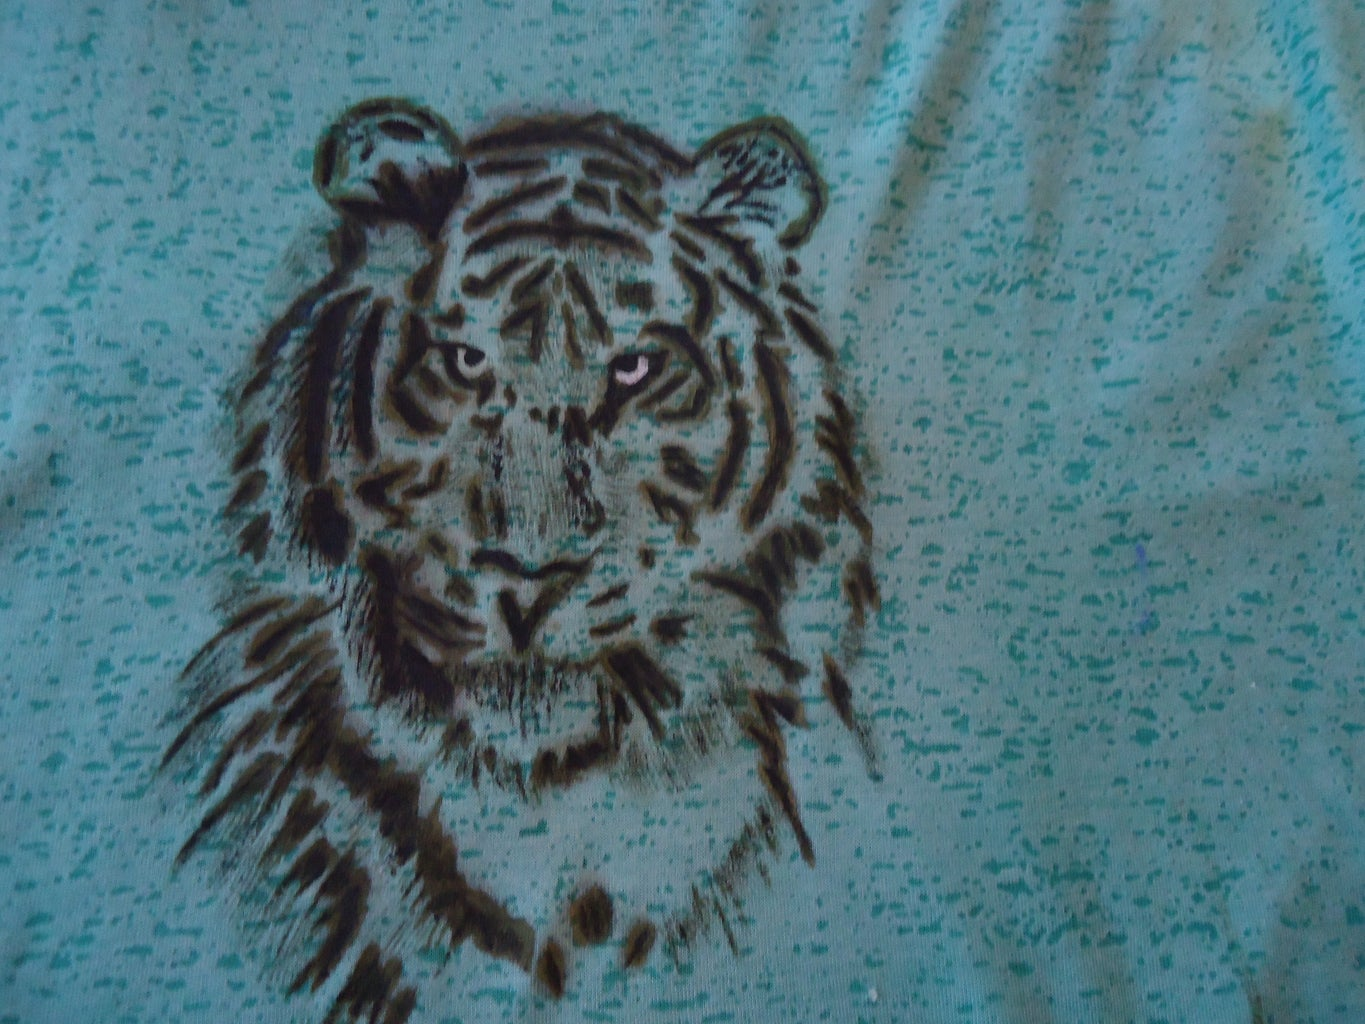 Painting the T-shirt